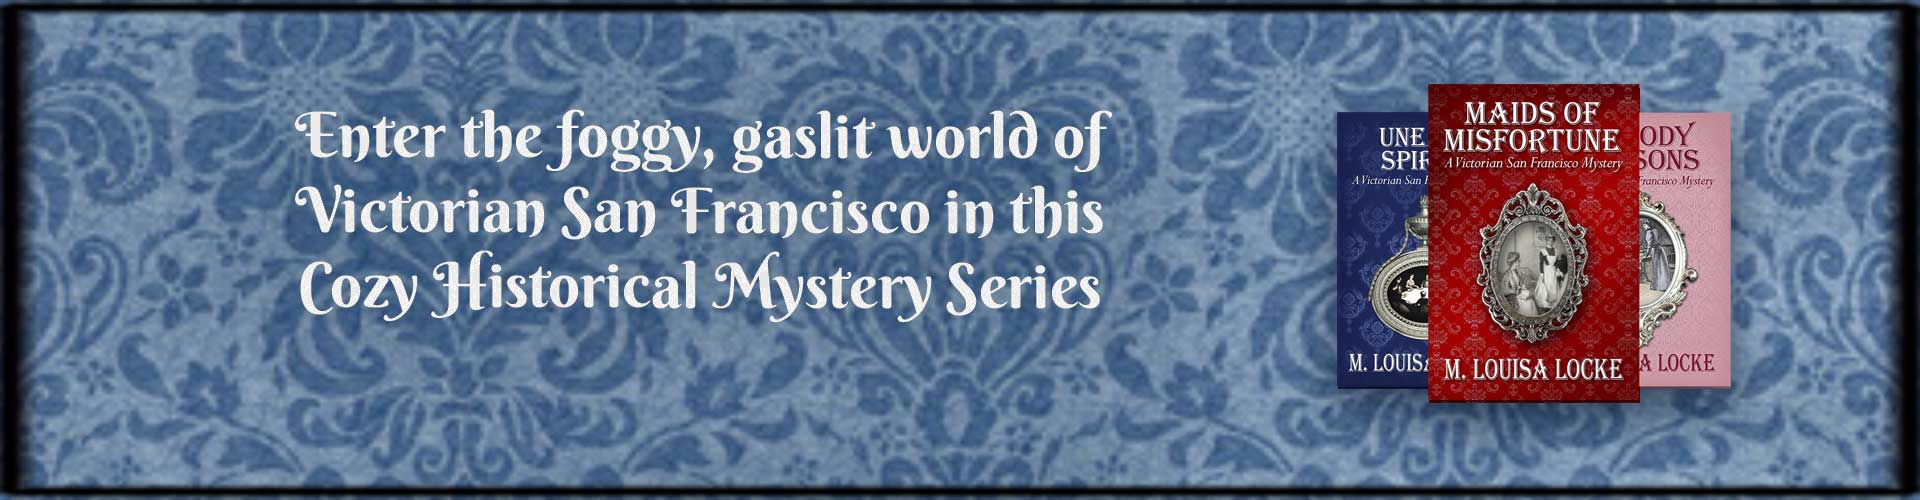 Enter the foggy, gaslit world of Victorian San Francisco in this cozy historical mystery series